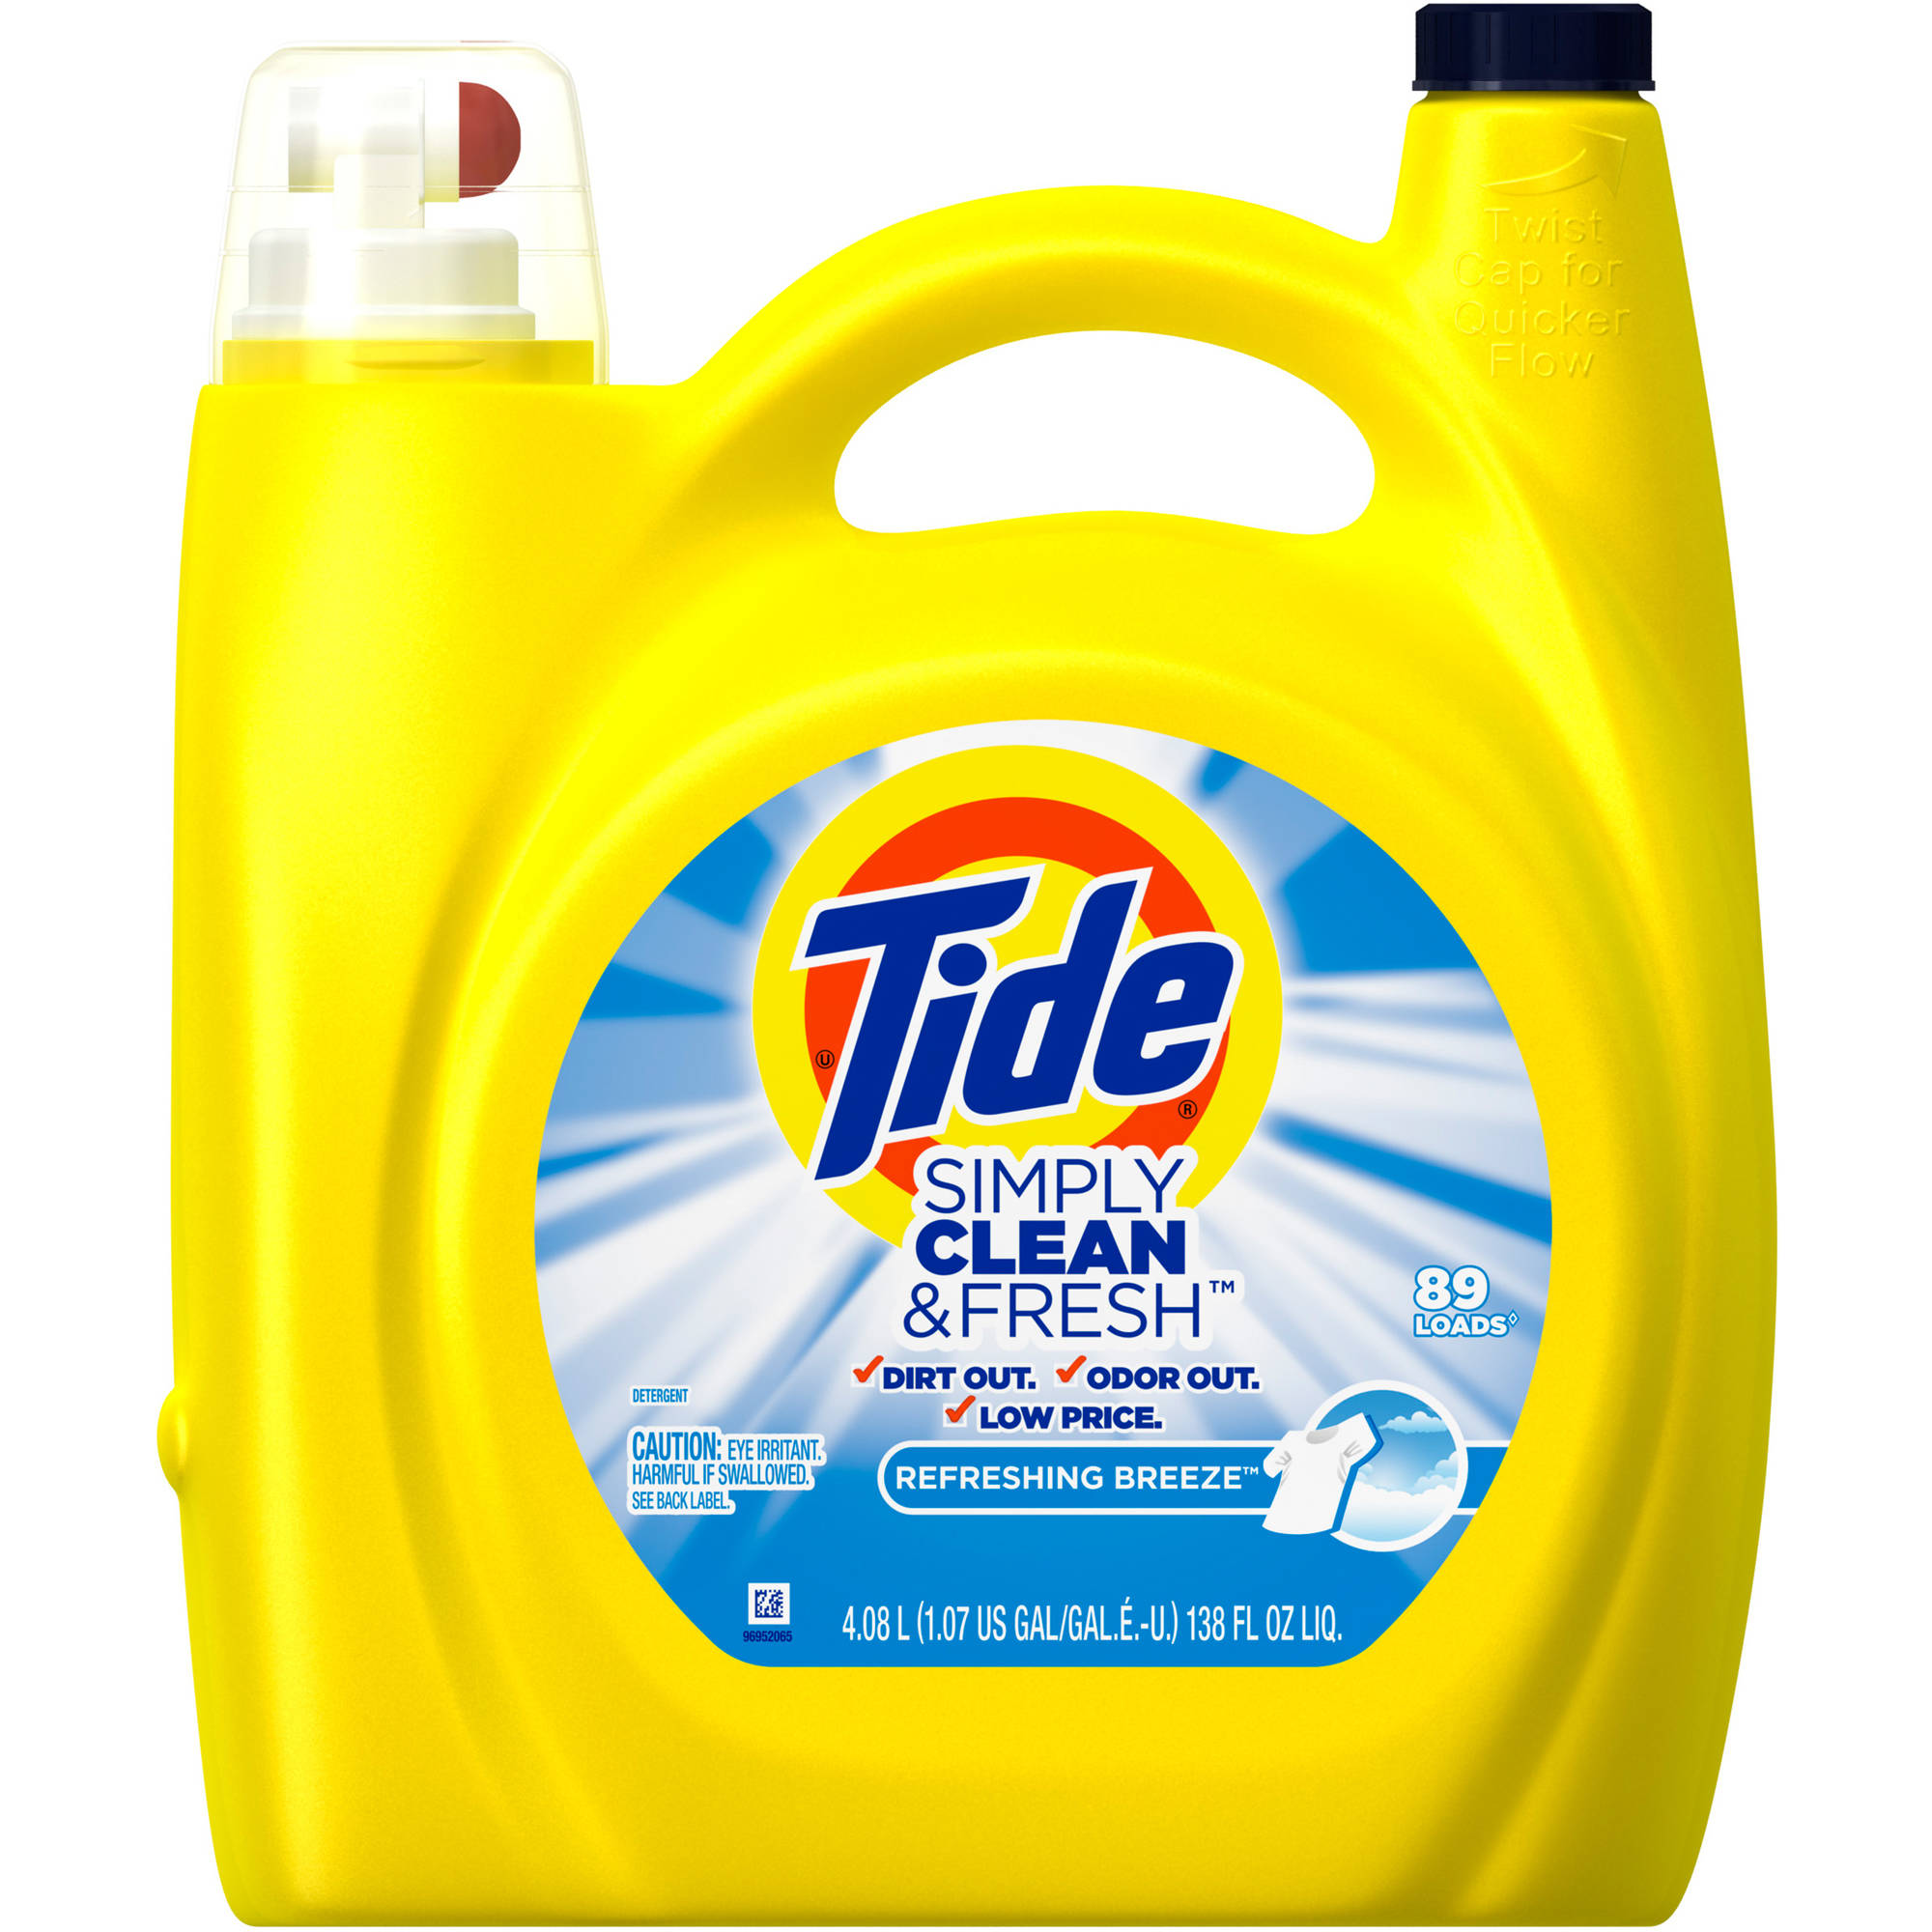 Tide Simply Clean & Fresh HE Liquid Laundry Detergent, Refreshing Breeze Scent, 89 loads, 138 oz